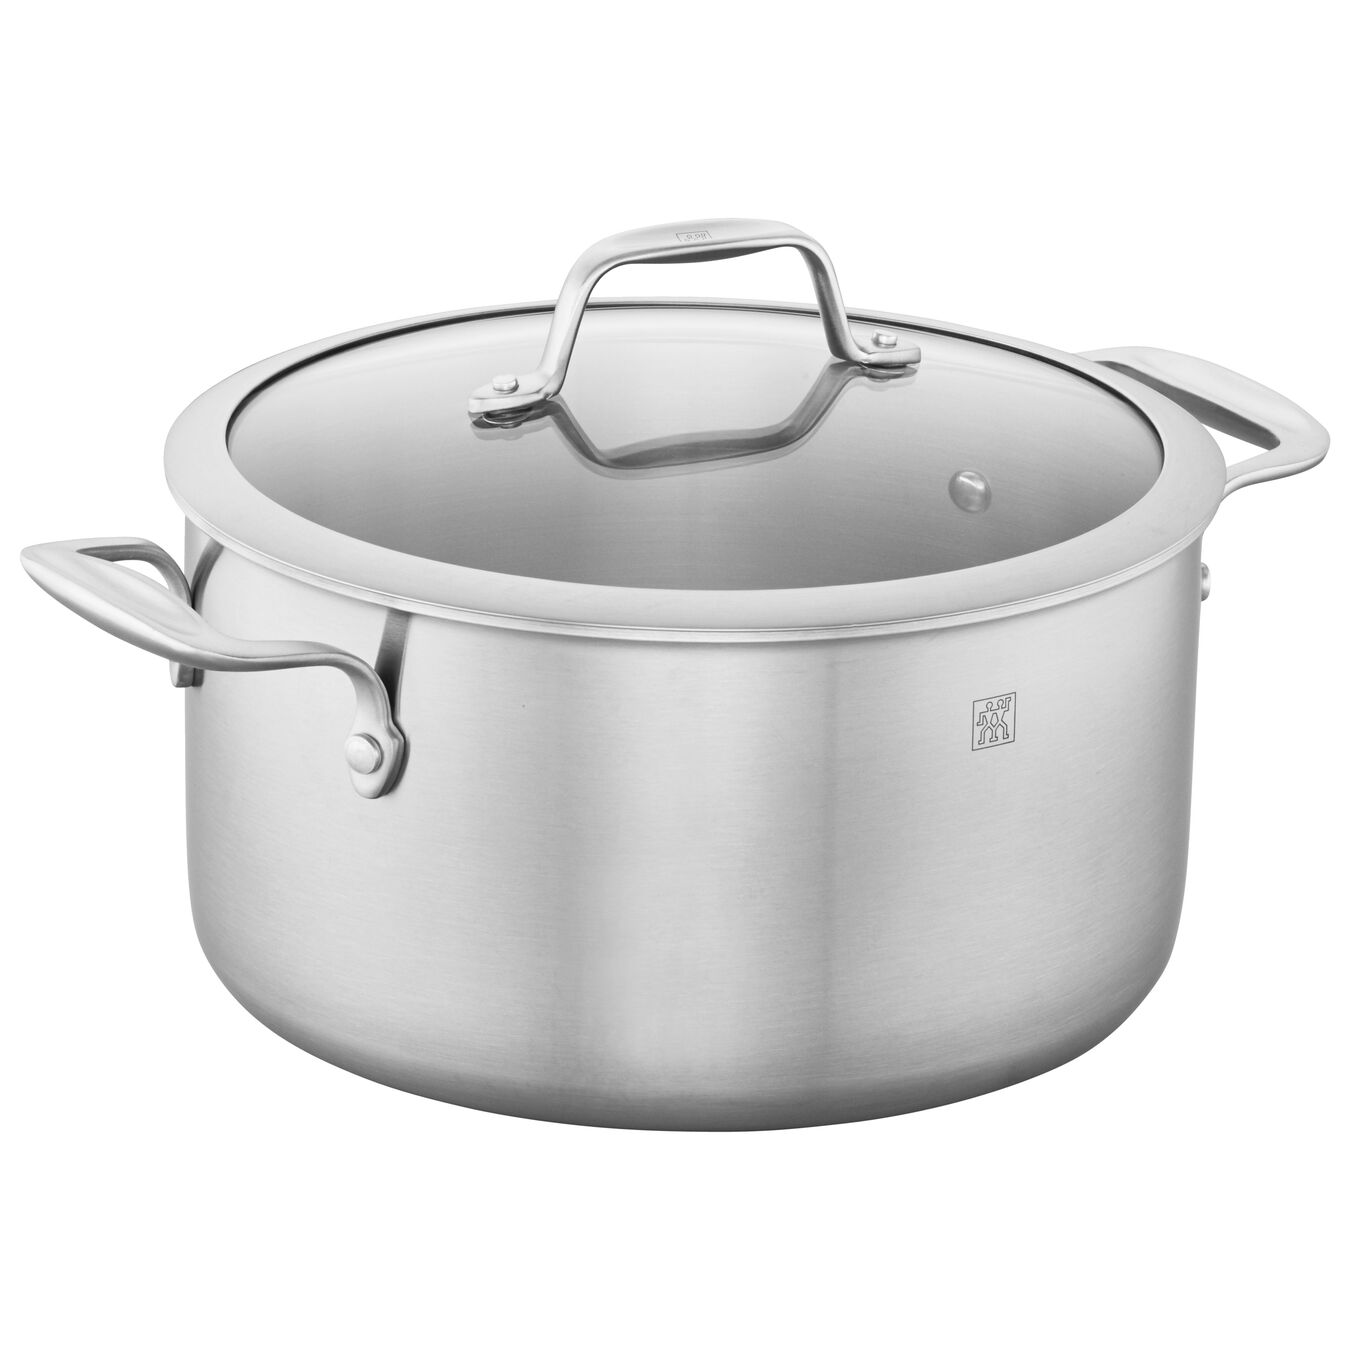 3-ply 6-qt Stainless Steel Dutch Oven,,large 1